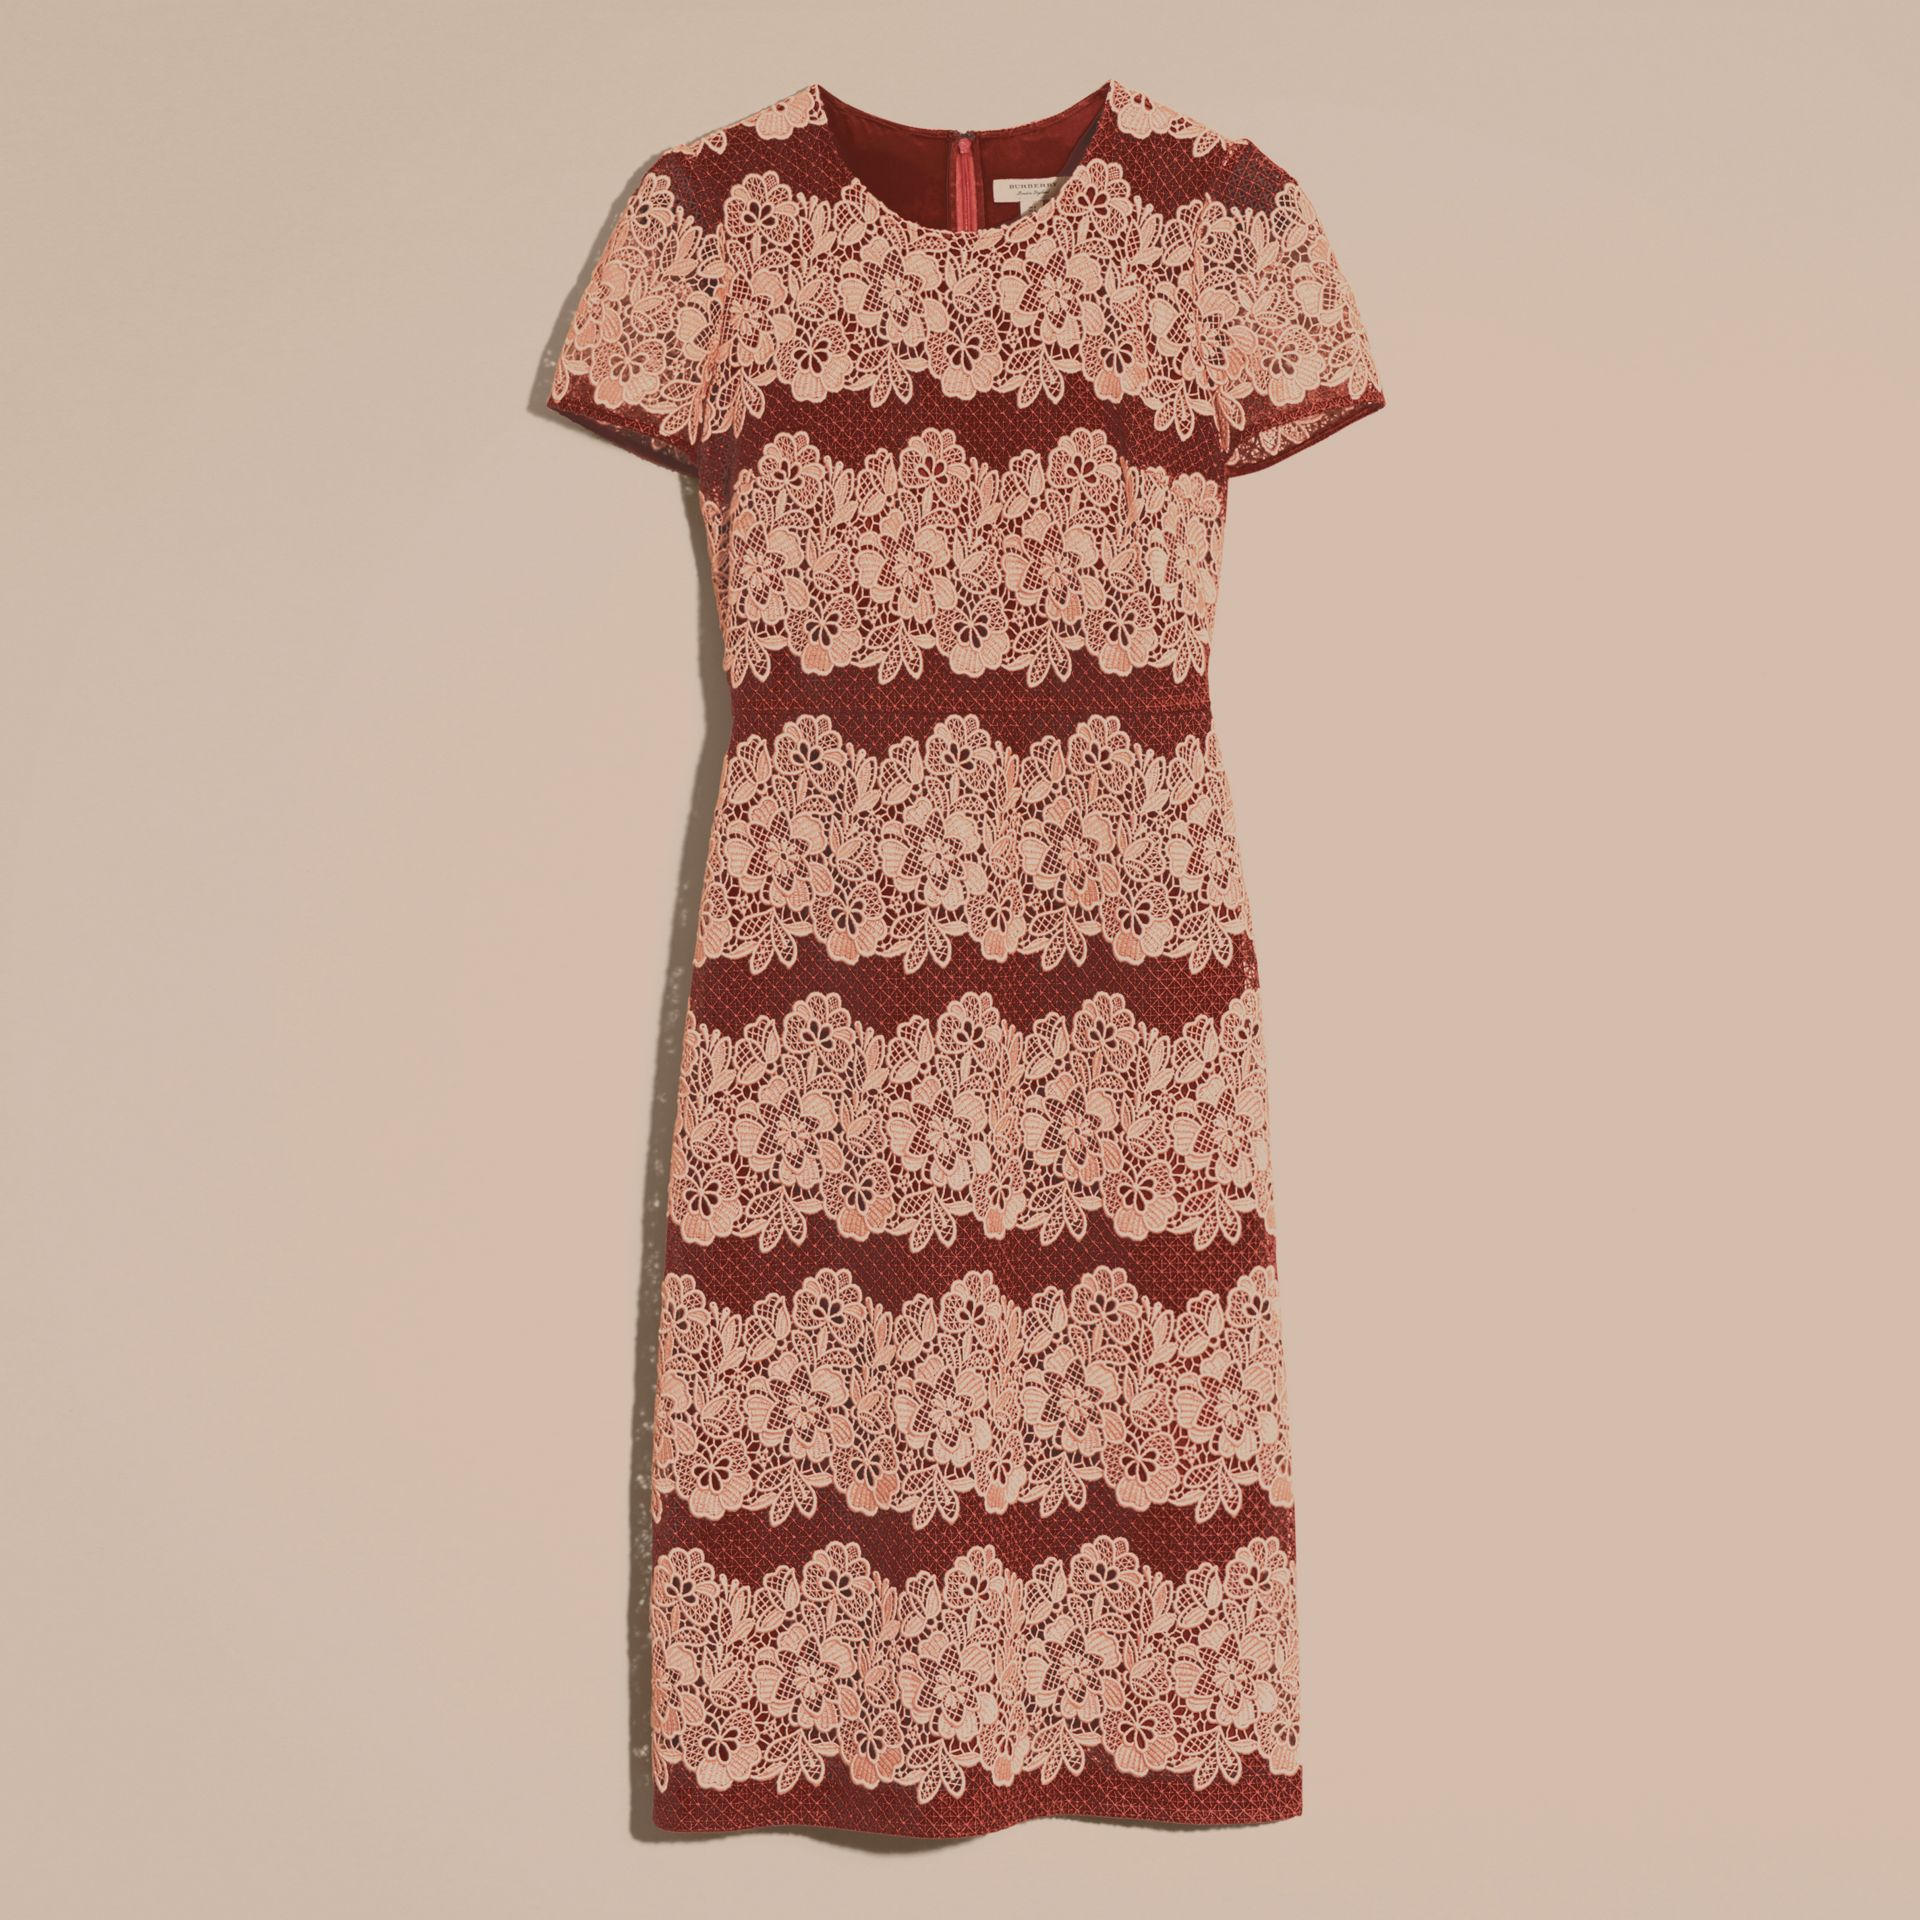 Copper pink/russet Mesh and Macramé Lace Shift Dress - gallery image 4